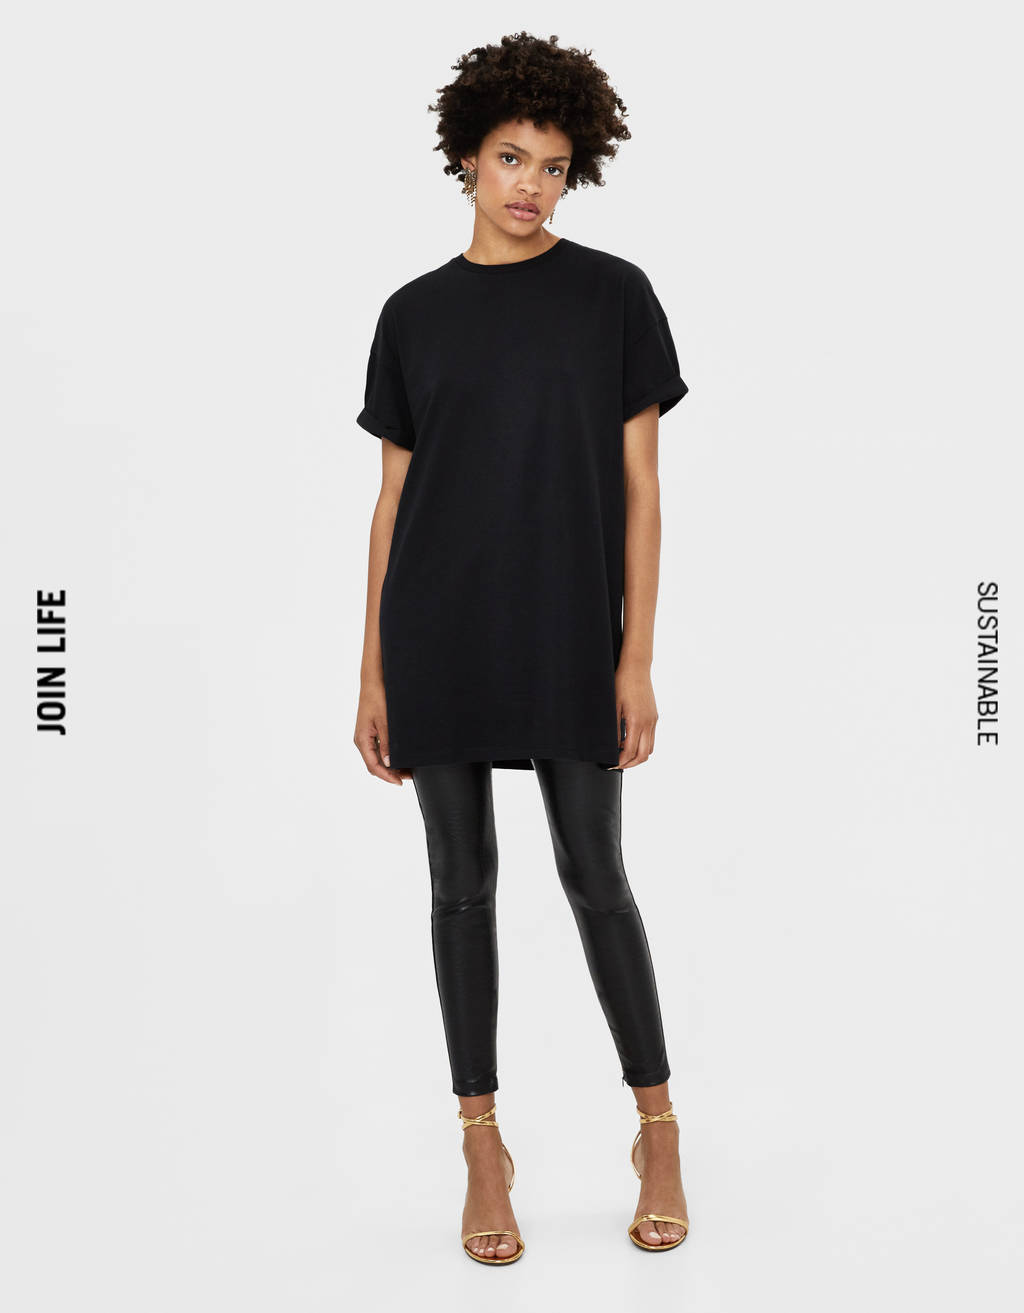 Long T-shirt with short sleeves